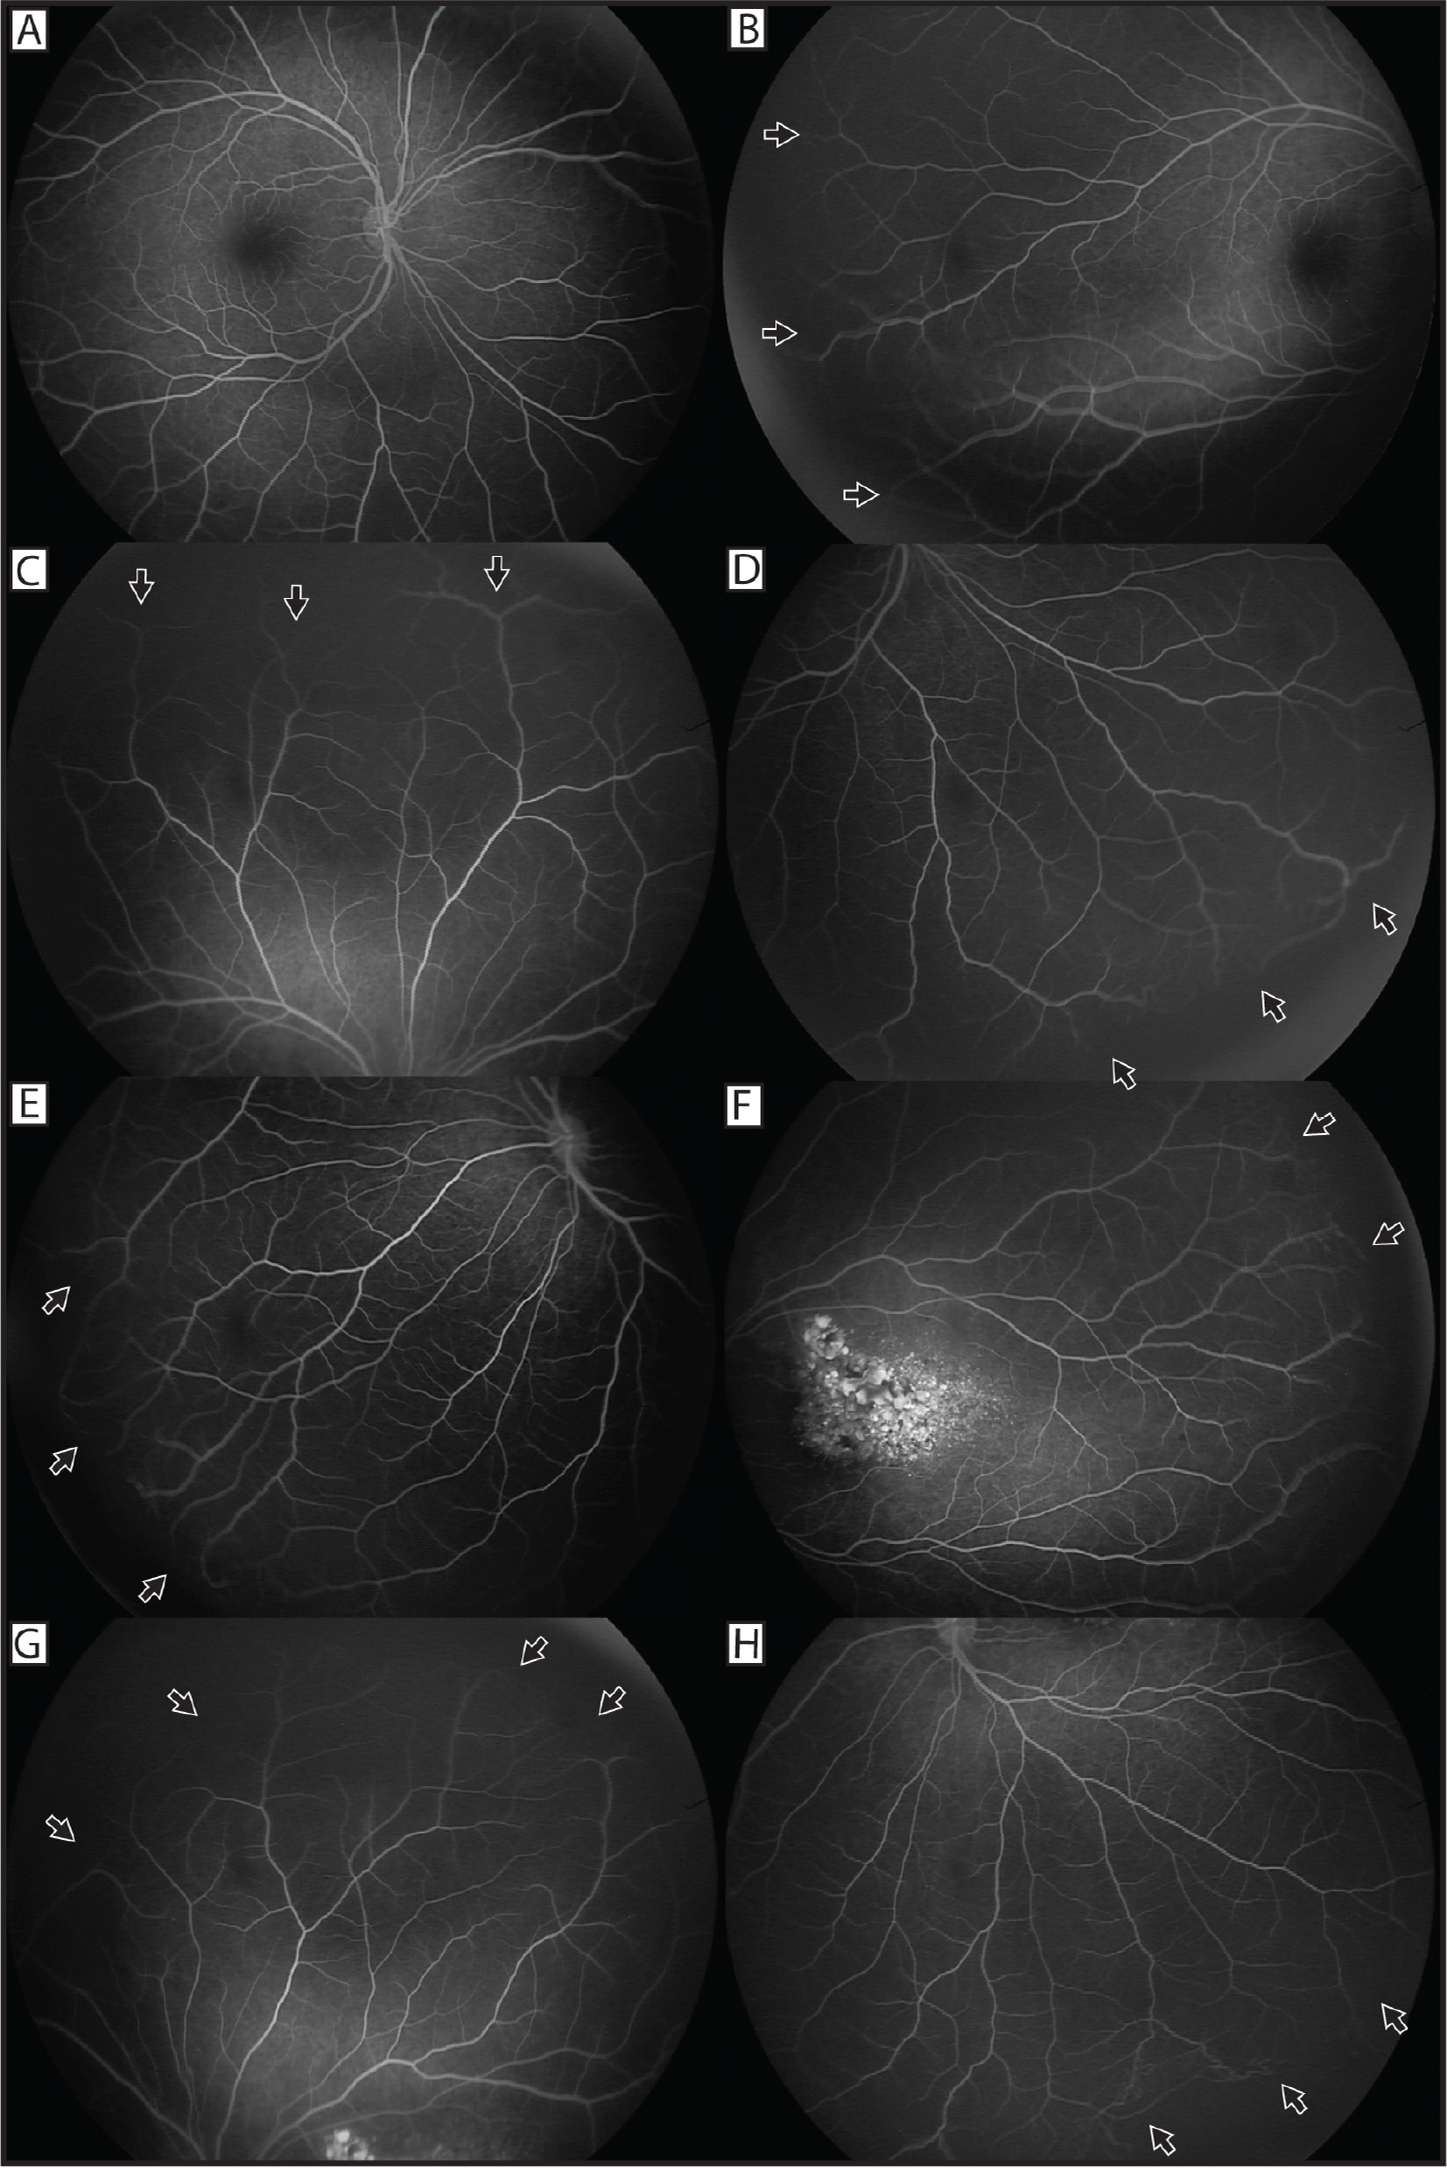 (A) Mid-phase fluorescein angiogram of the right eye at 1:33 seconds. (B) Mid-phase wide field fluorescein angiogram of the right eye at 1:40 seconds demonstrates peripheral nonperfusion and vessel drop-out (arrows) that are also noted in the superior quadrant (C) and inferonasal quadrants (D). (E) Mid-phase photograph of nasal quadrant in left eye demonstrates peripheral nonperfusion and vessel dropout (arrows) that is also noted in the temporal quadrant (F). (G) Mid-phase photograph of superior quadrant in left eye that demonstrates capillary nonperfusion and cessation of vessels (arrows) with vascular anomalies that are also revealed in the inferotemporal quadrant of the left eye (H).